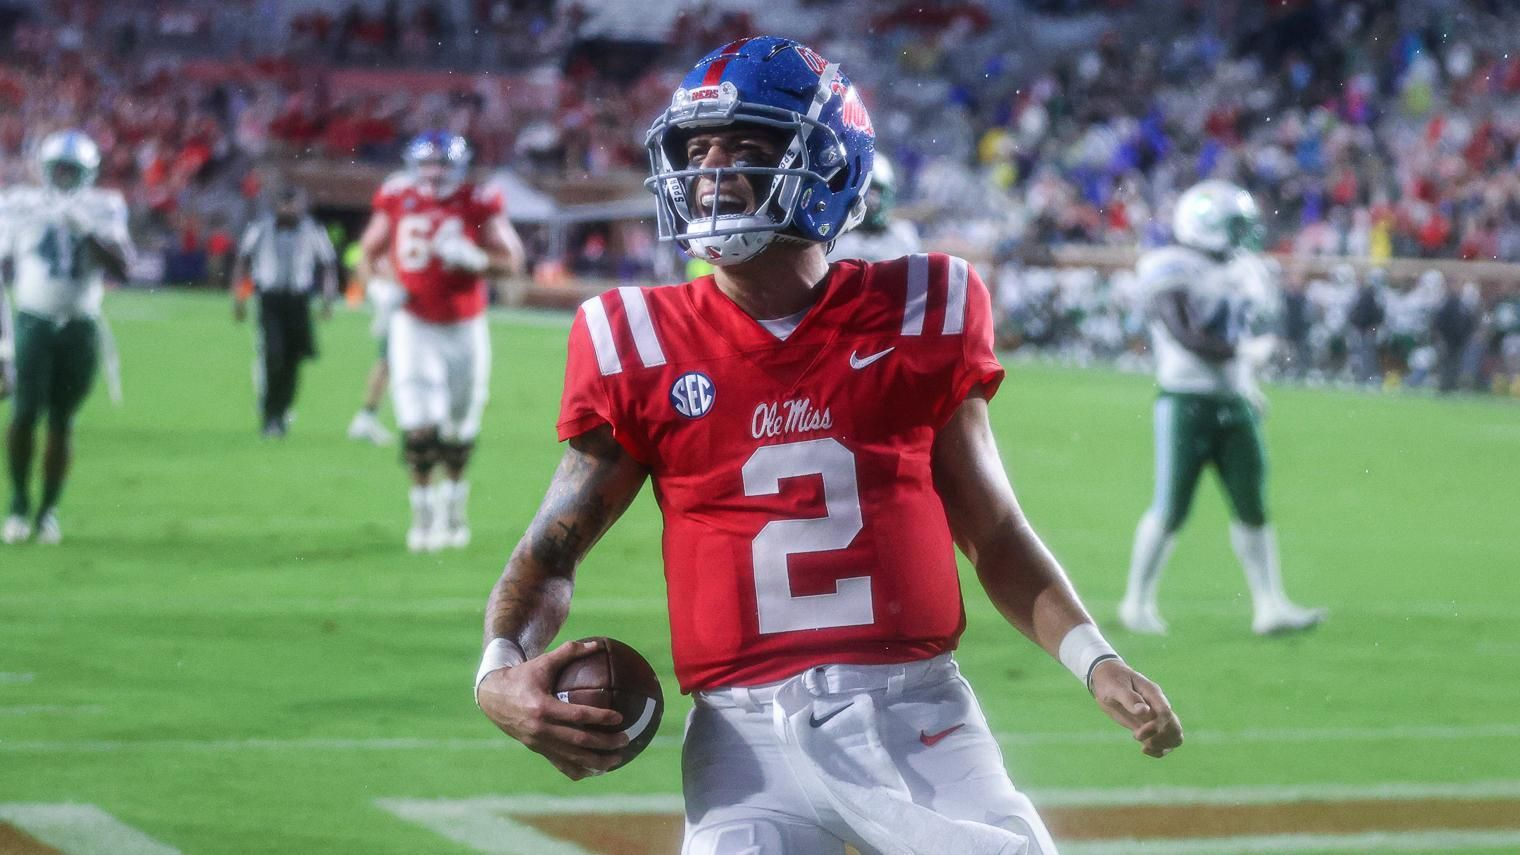 Does the SEC have college football's best QBs?